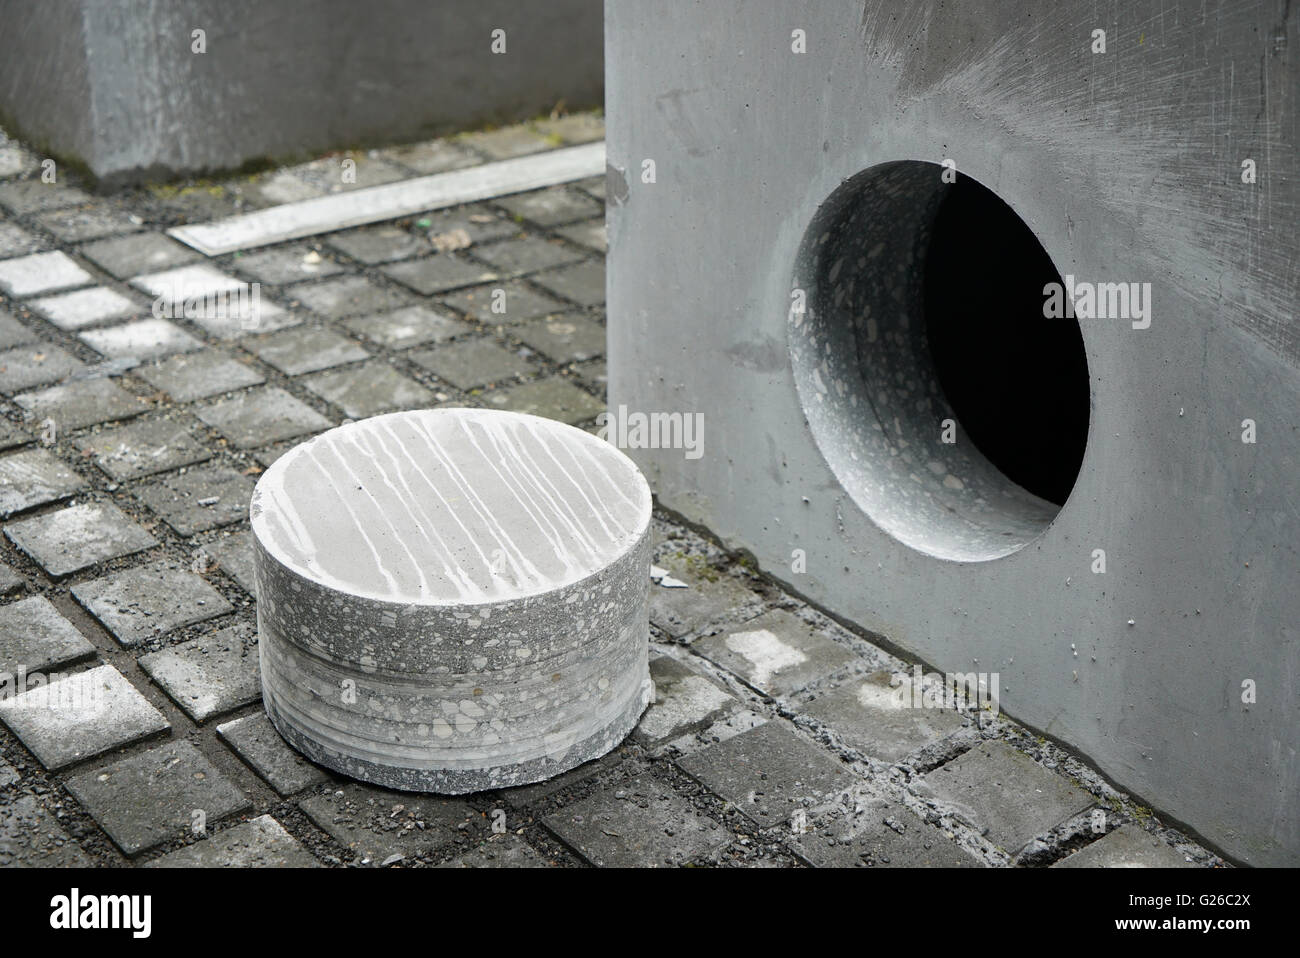 Berlin, Germany. 25th May, 2015. A sample of the core lays next to a stele of the Holocaust Memorial in Berlin, Stock Photo